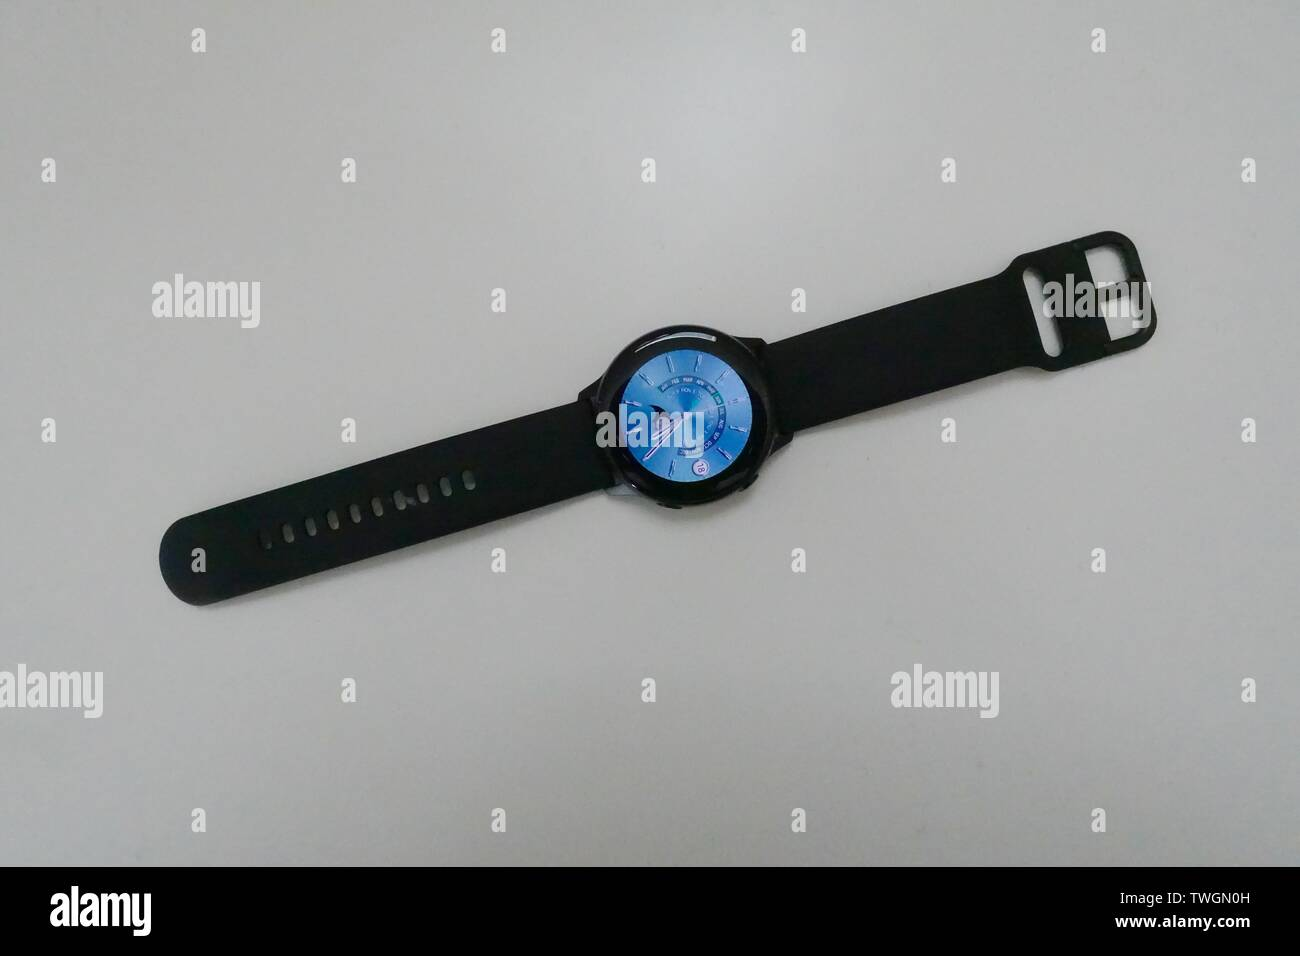 A black Samsung Galaxy Active smart watch displaying a standard watch face on a white background. - Stock Image